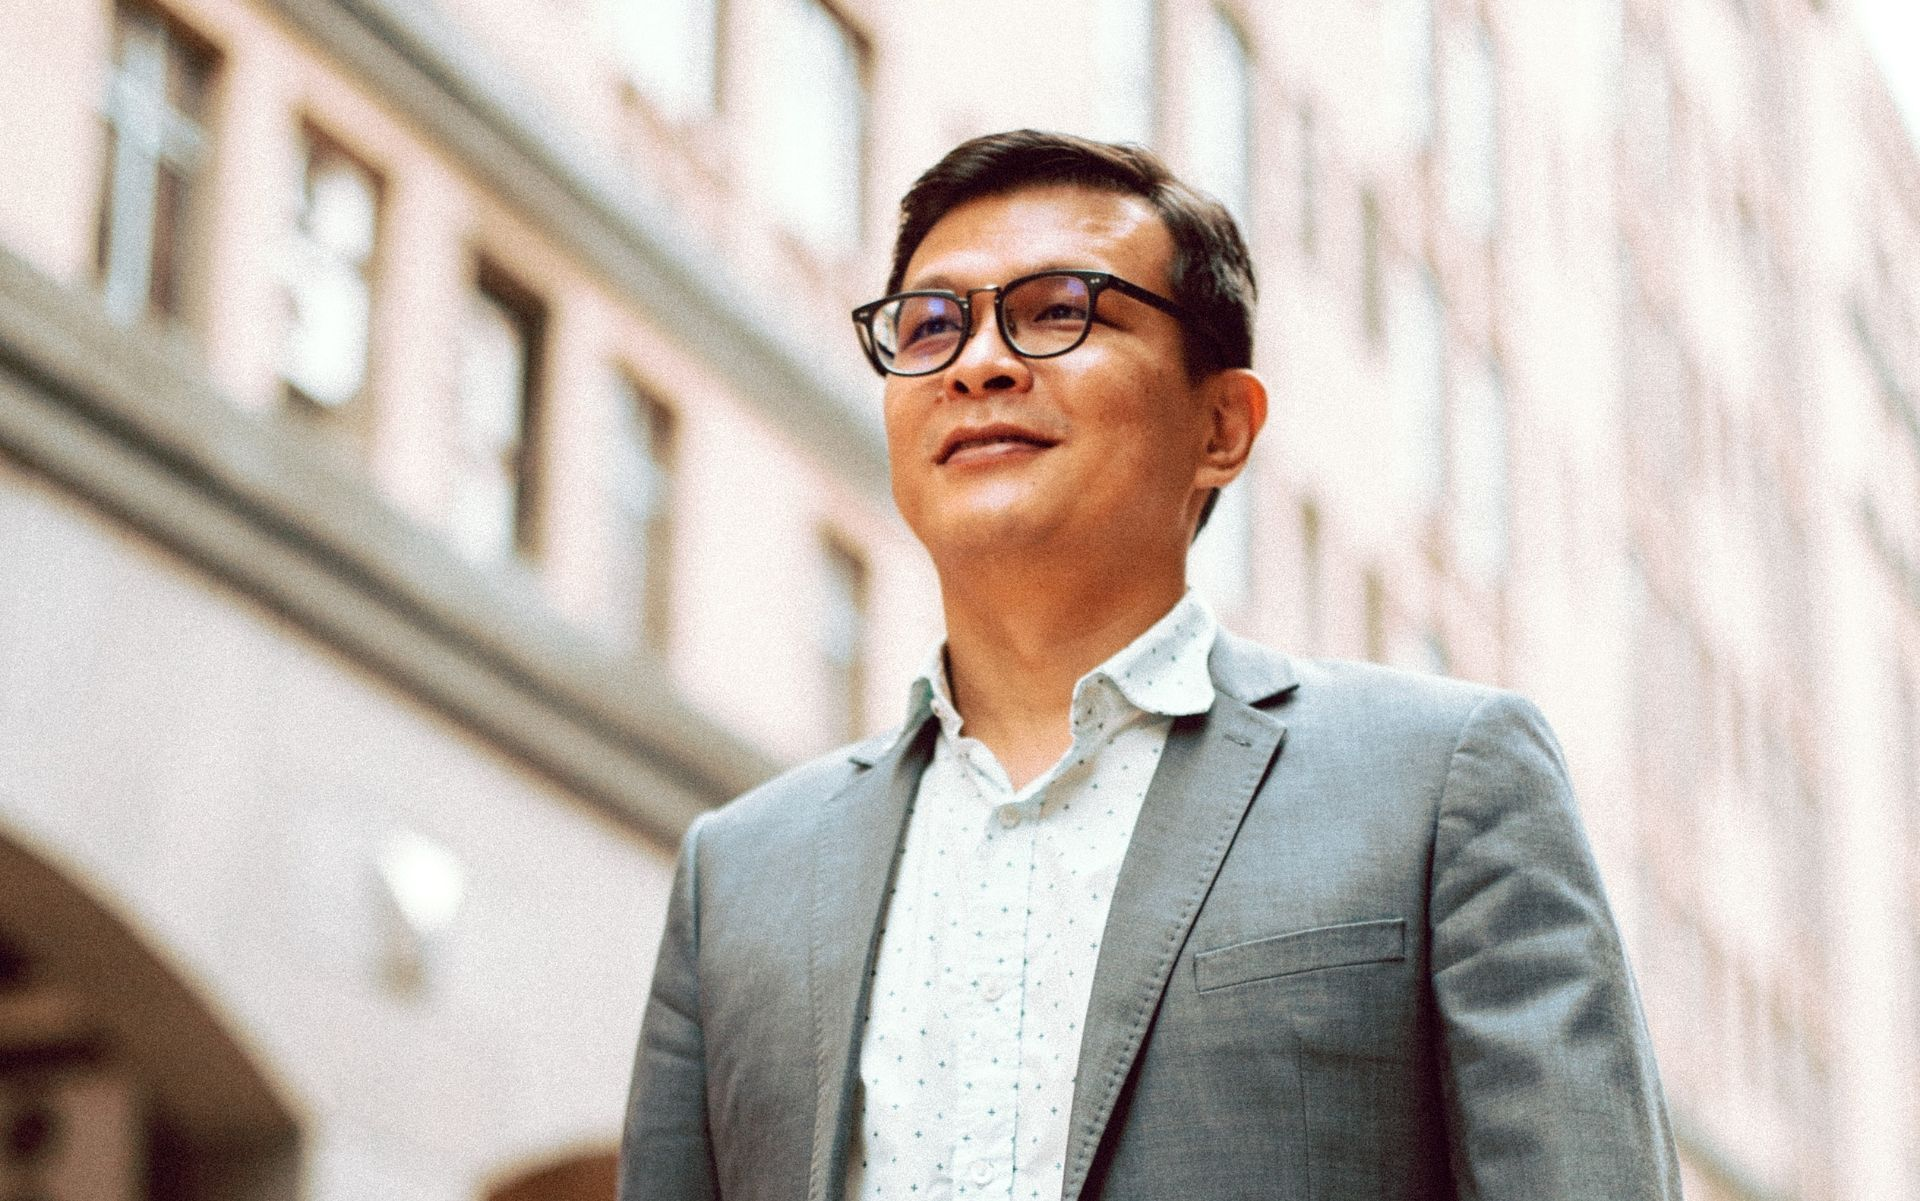 Nexstream Founder Dato' Kelvin Kwek, On Turning Dreams Into A Reality